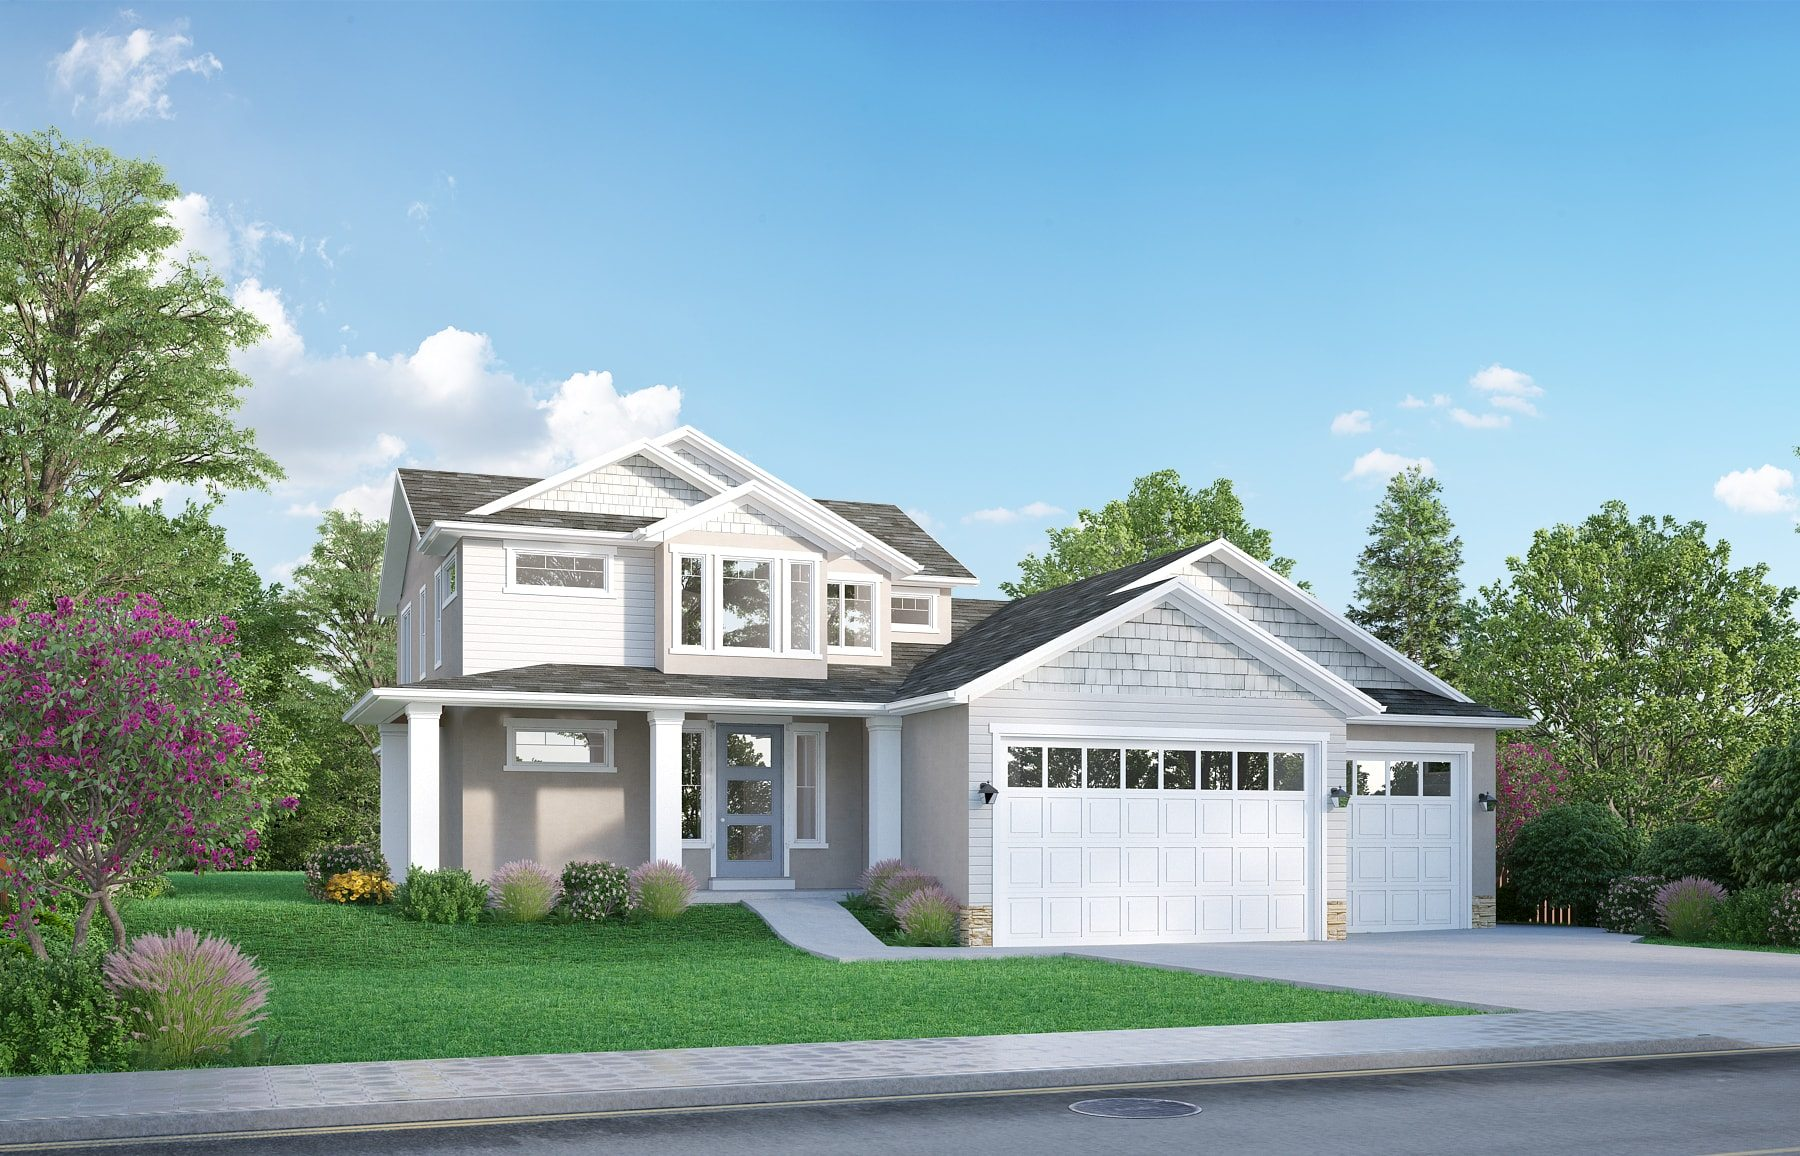 Artistic rendering of cami home plan by lightyear homes for Modern homes utah for sale